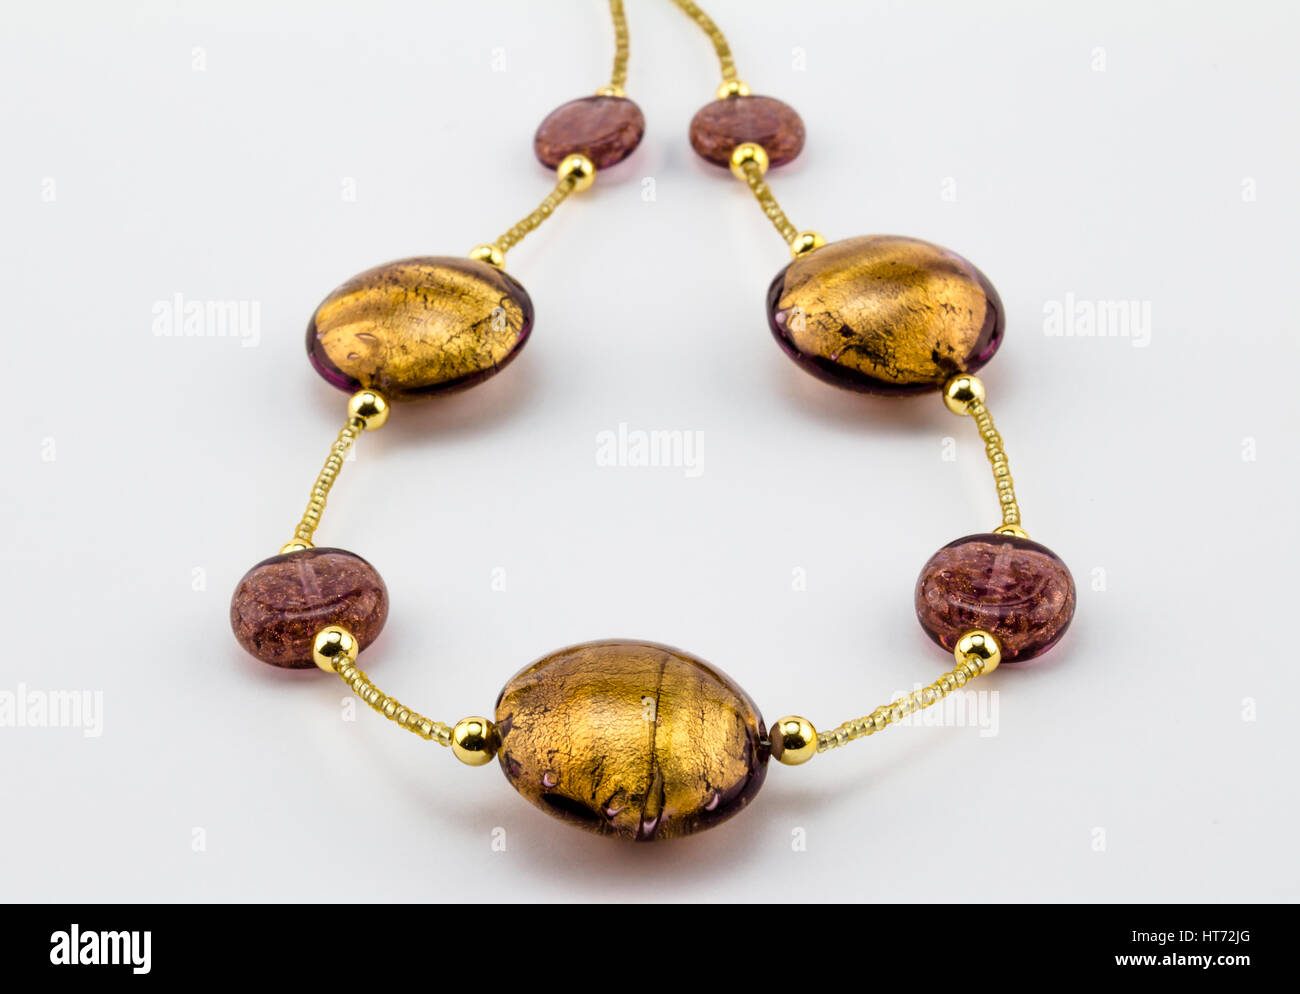 Glass - Murano gold bead and dusty rose necklace close up on white background - Venice - Stock Image